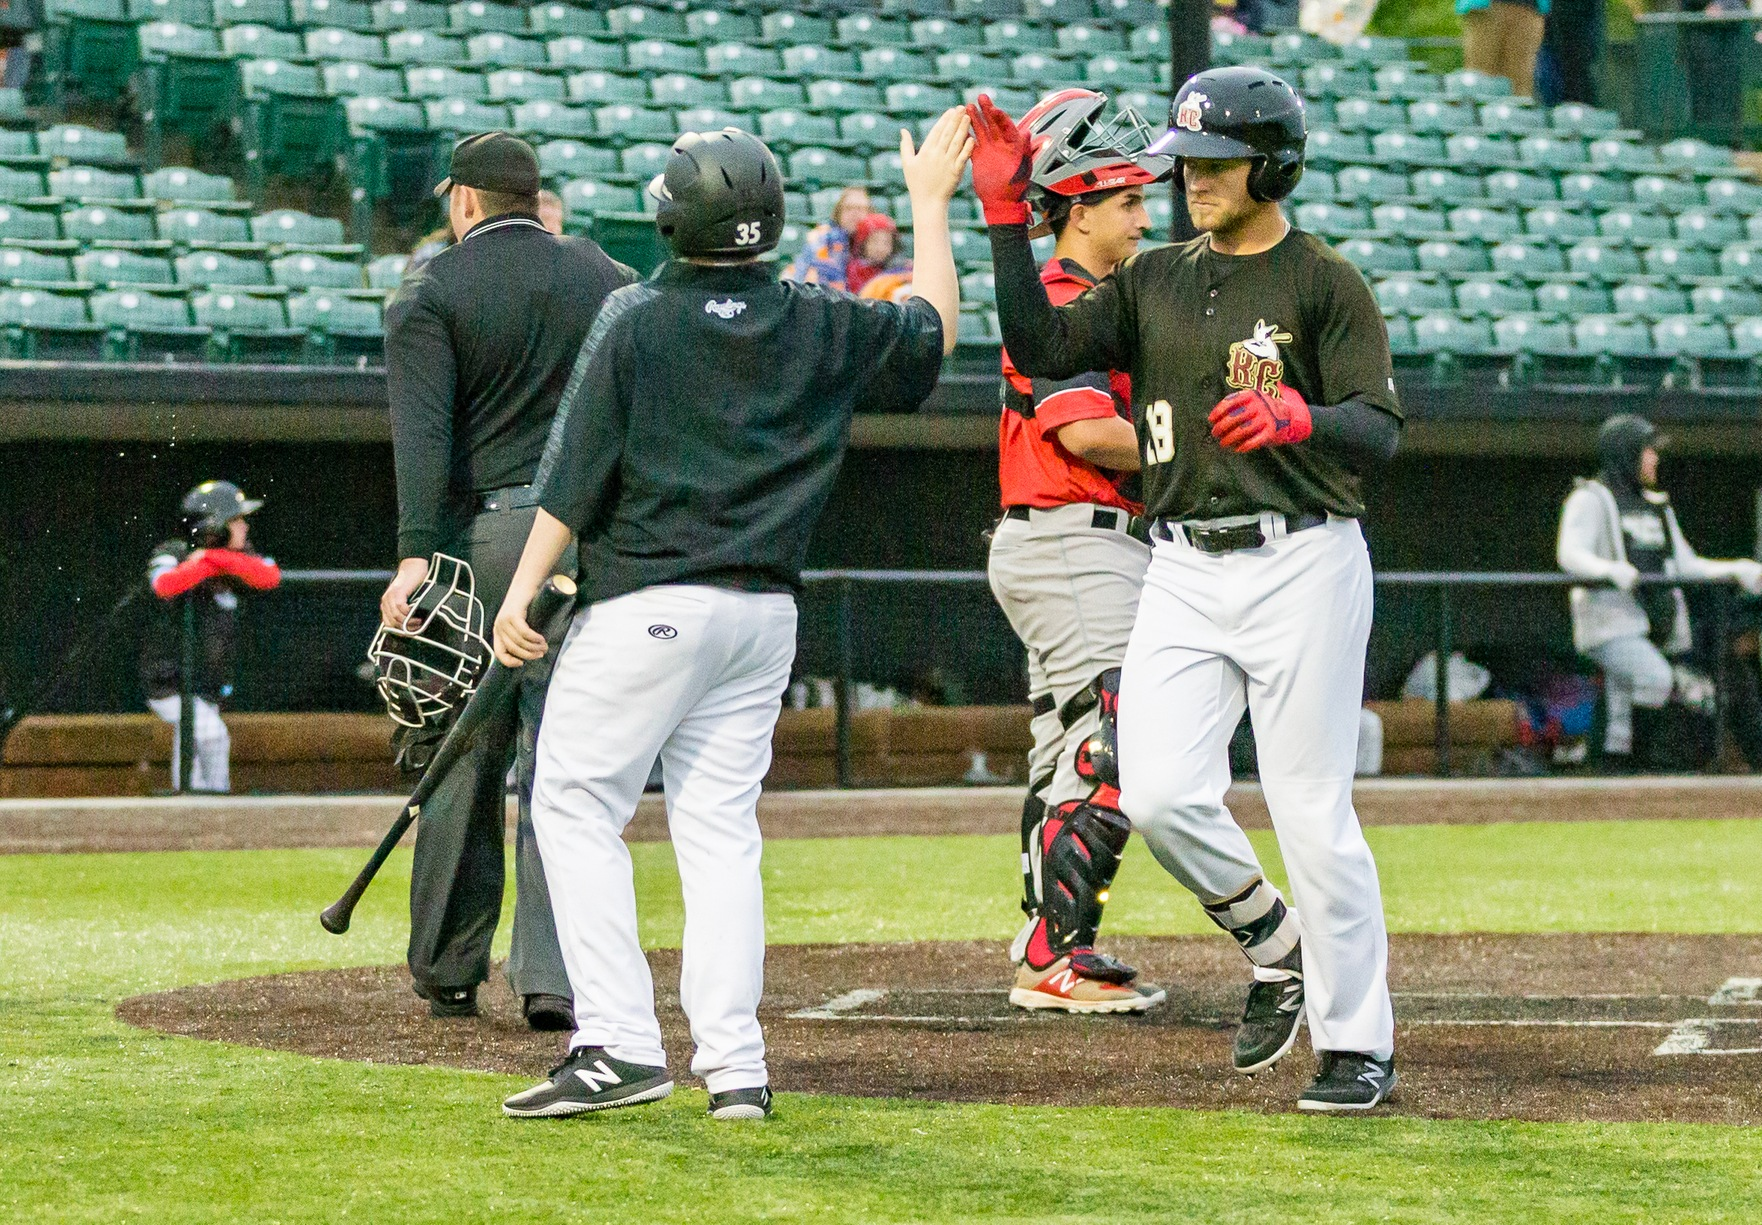 Rascals Blank Wild Things 9-0